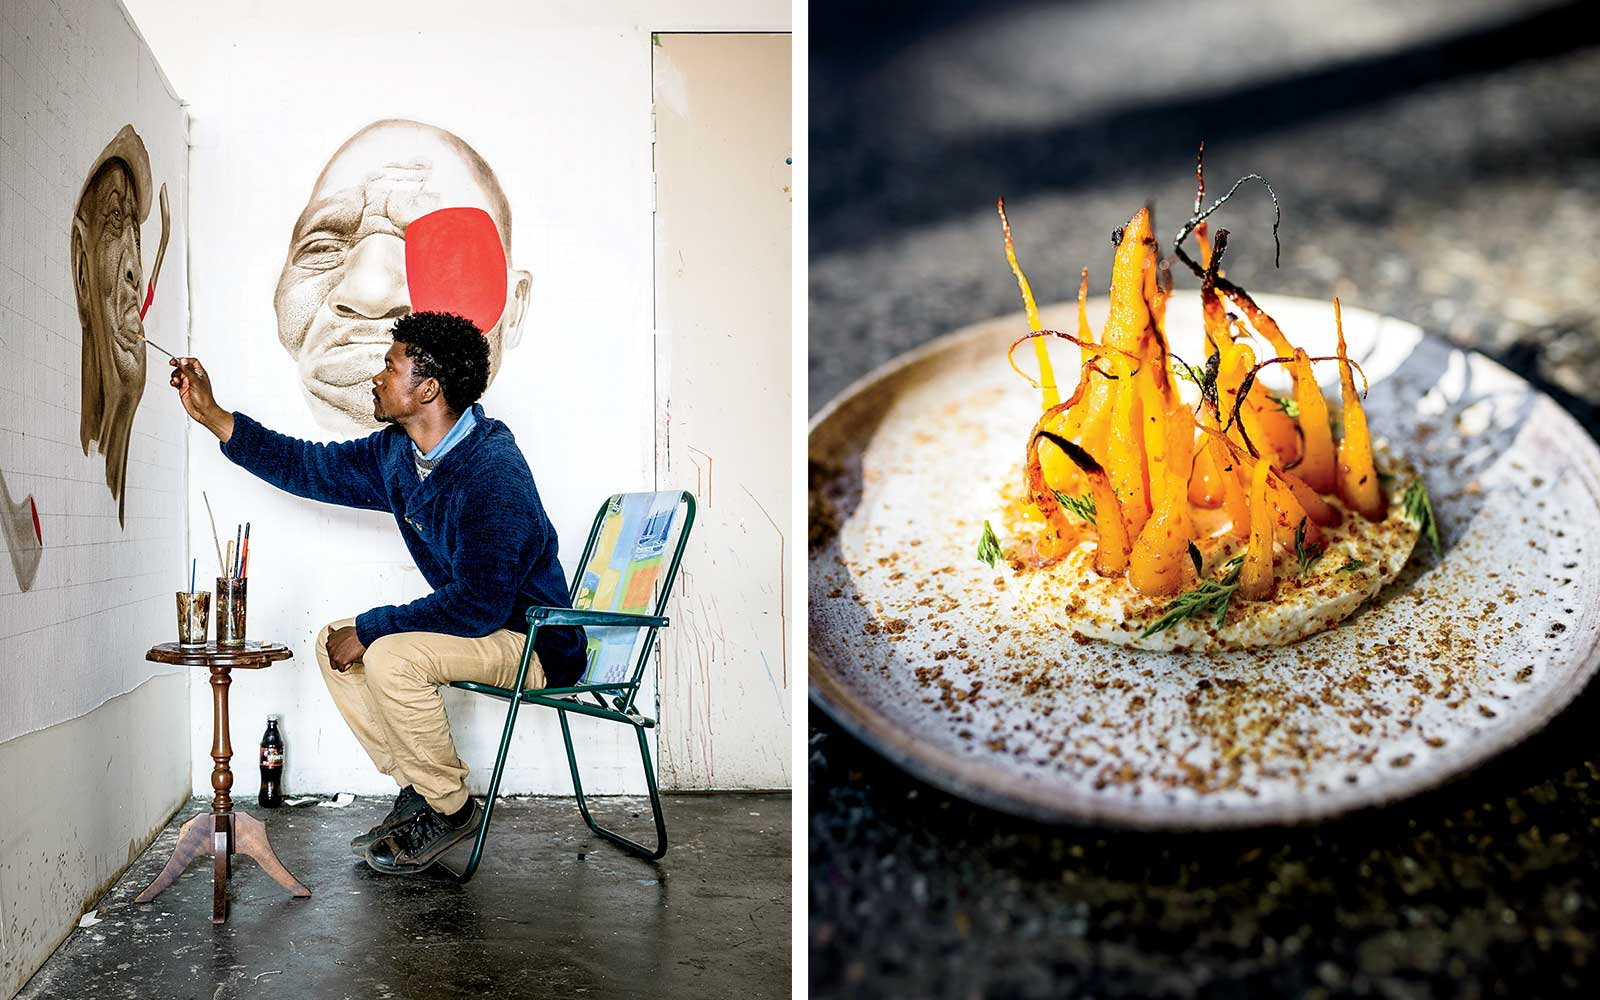 Artist Victor Kuster in Johannesburg; South African food at Urbanologi